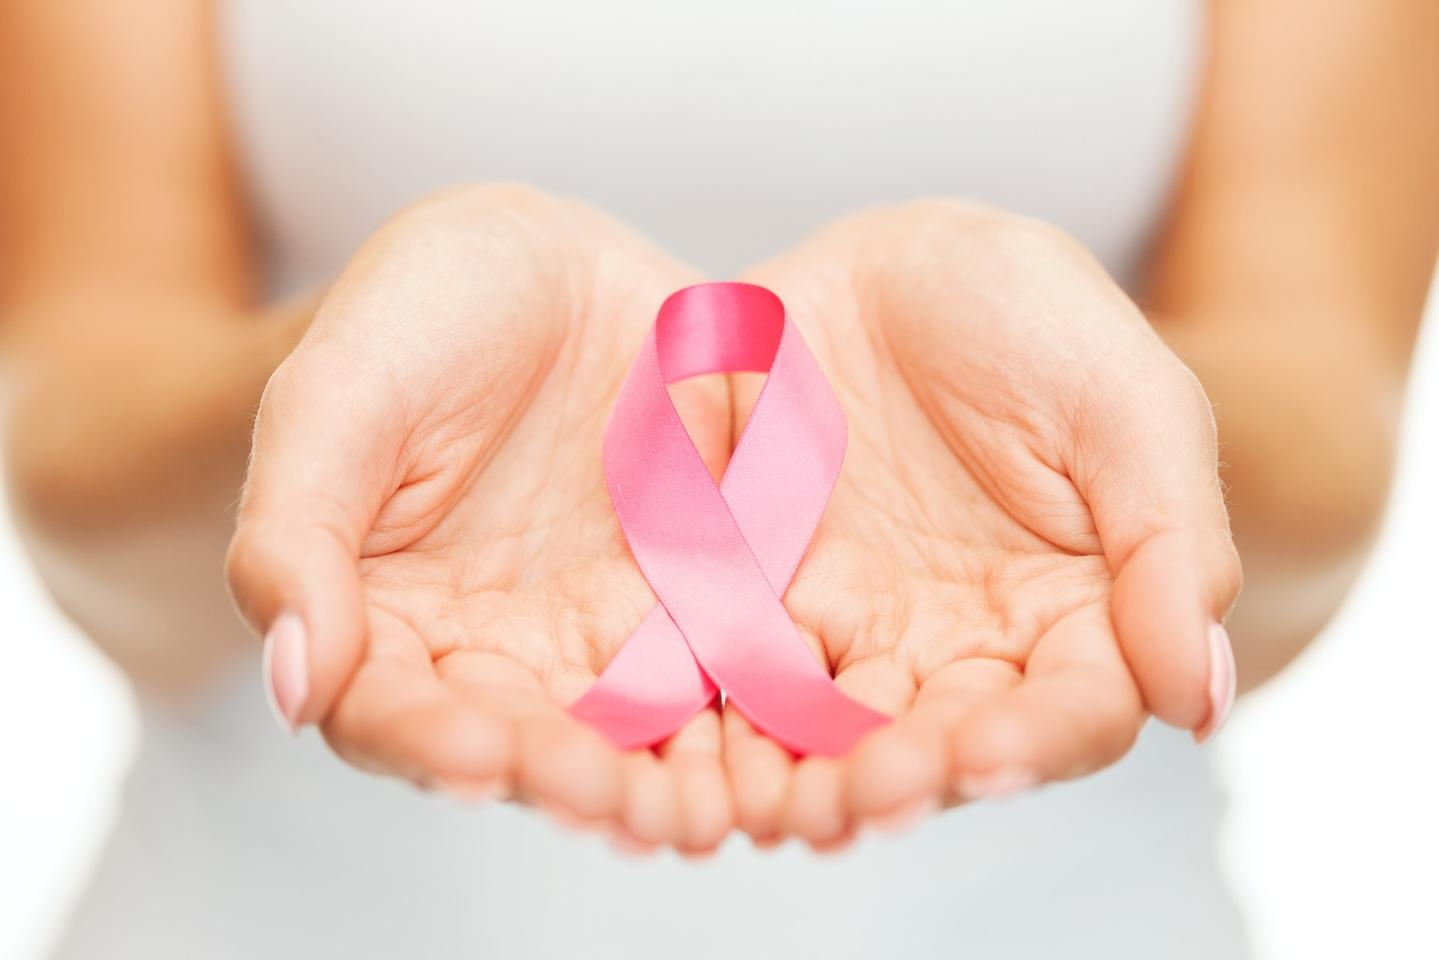 A specific protein, called NR2F1, could improve treatment of breast cancer and spare patients from unnecessary treatments